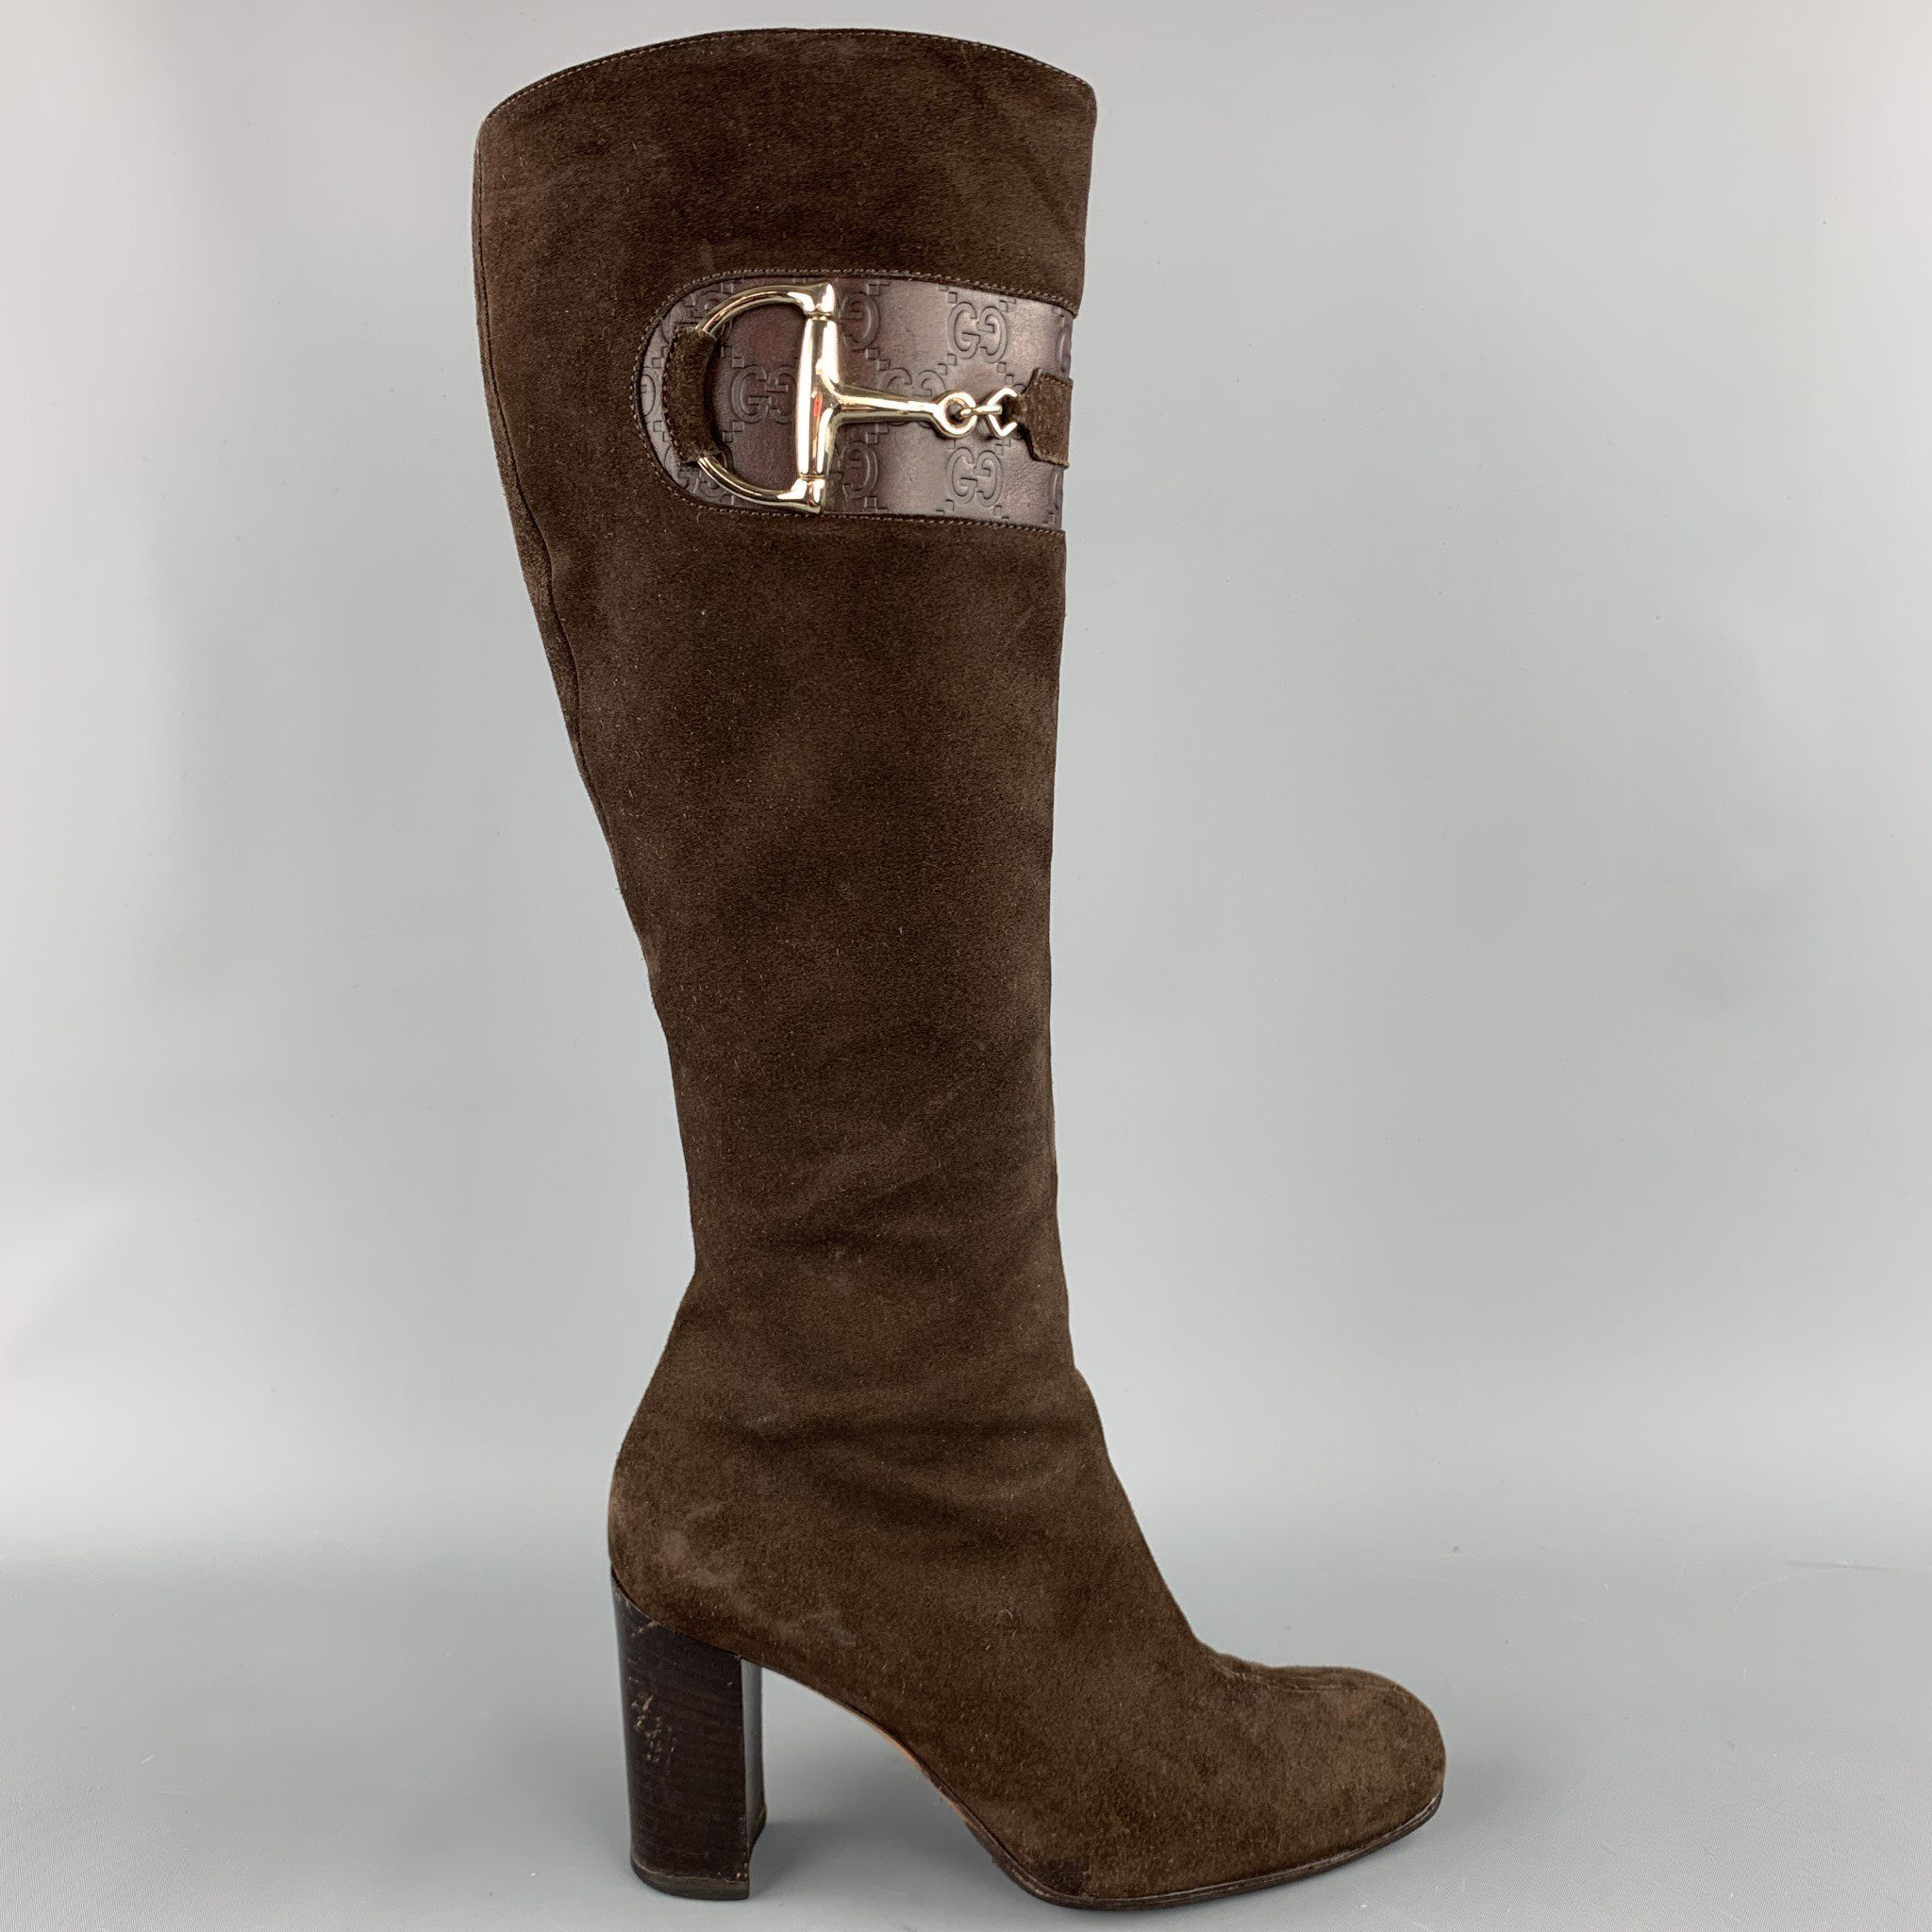 GUCCI Size 6.5 Brown Suede Knee High